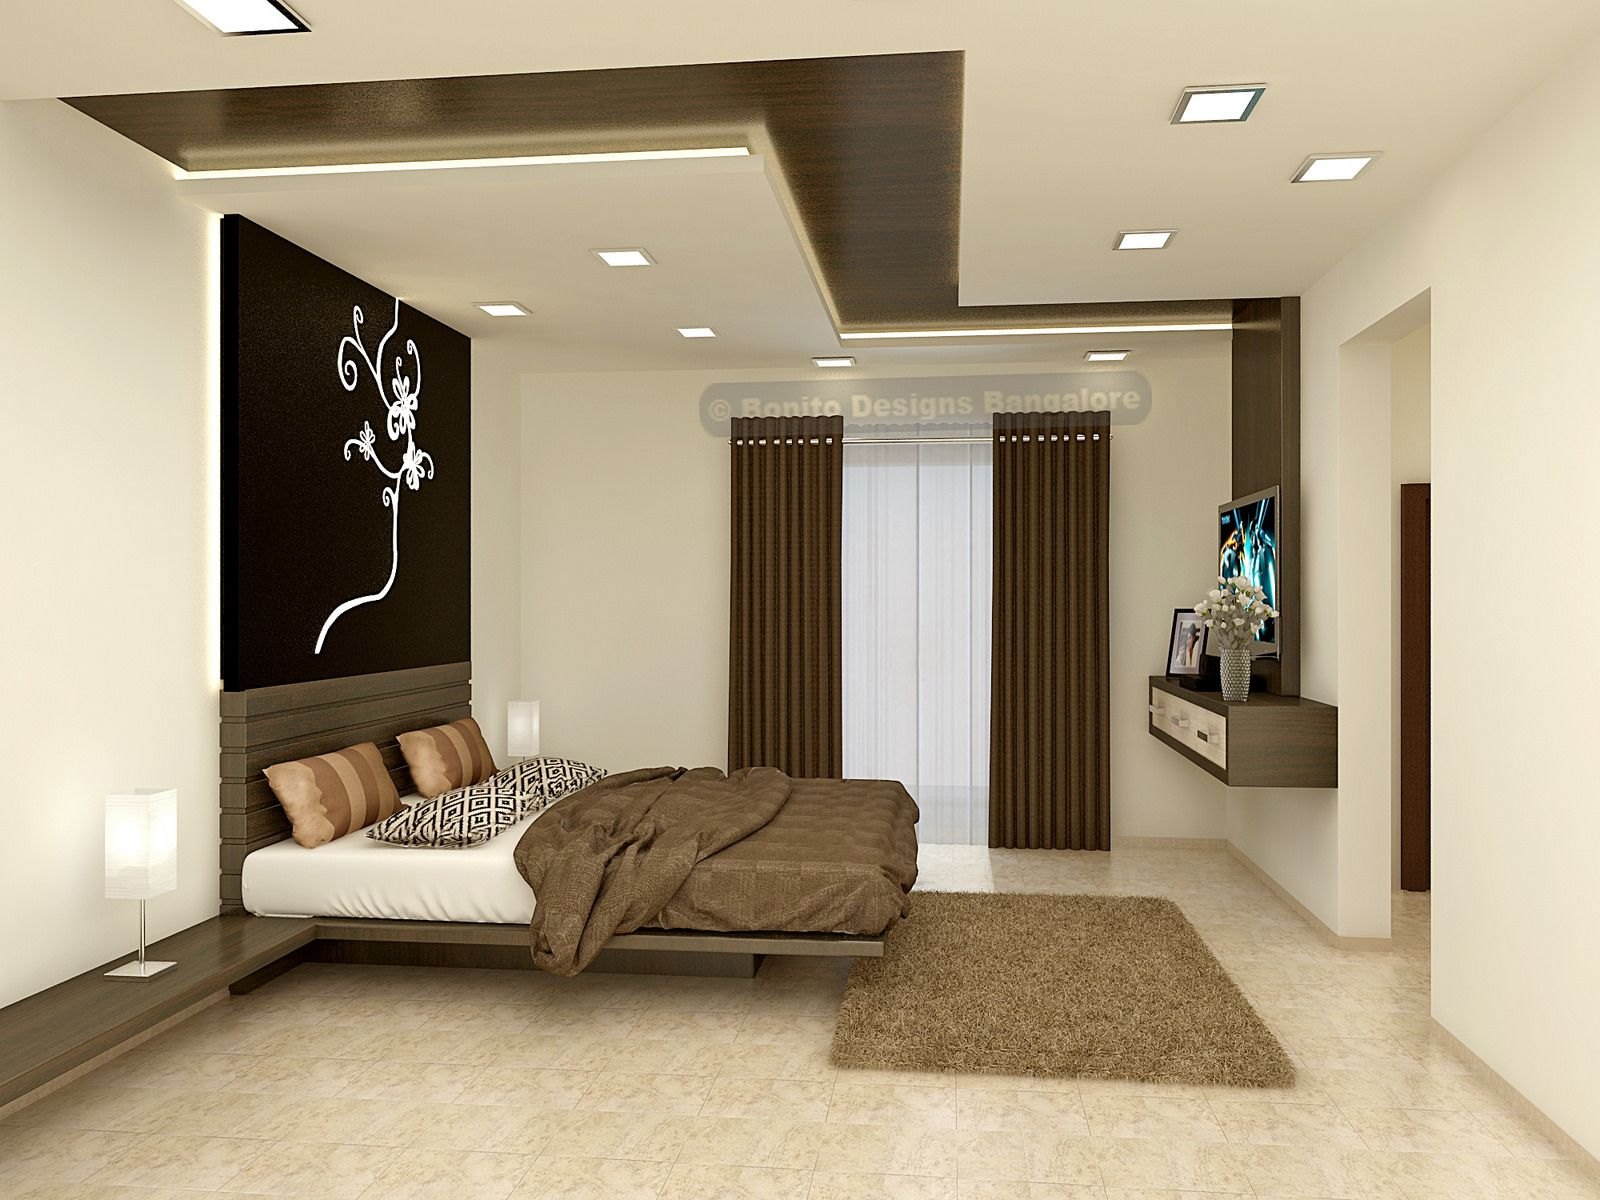 false ceiling designs home selling design 70 Desain Plafon Ruang Tamu Cantik | Renovasi-Rumah.net Fall Ceiling  Designs Bedroom